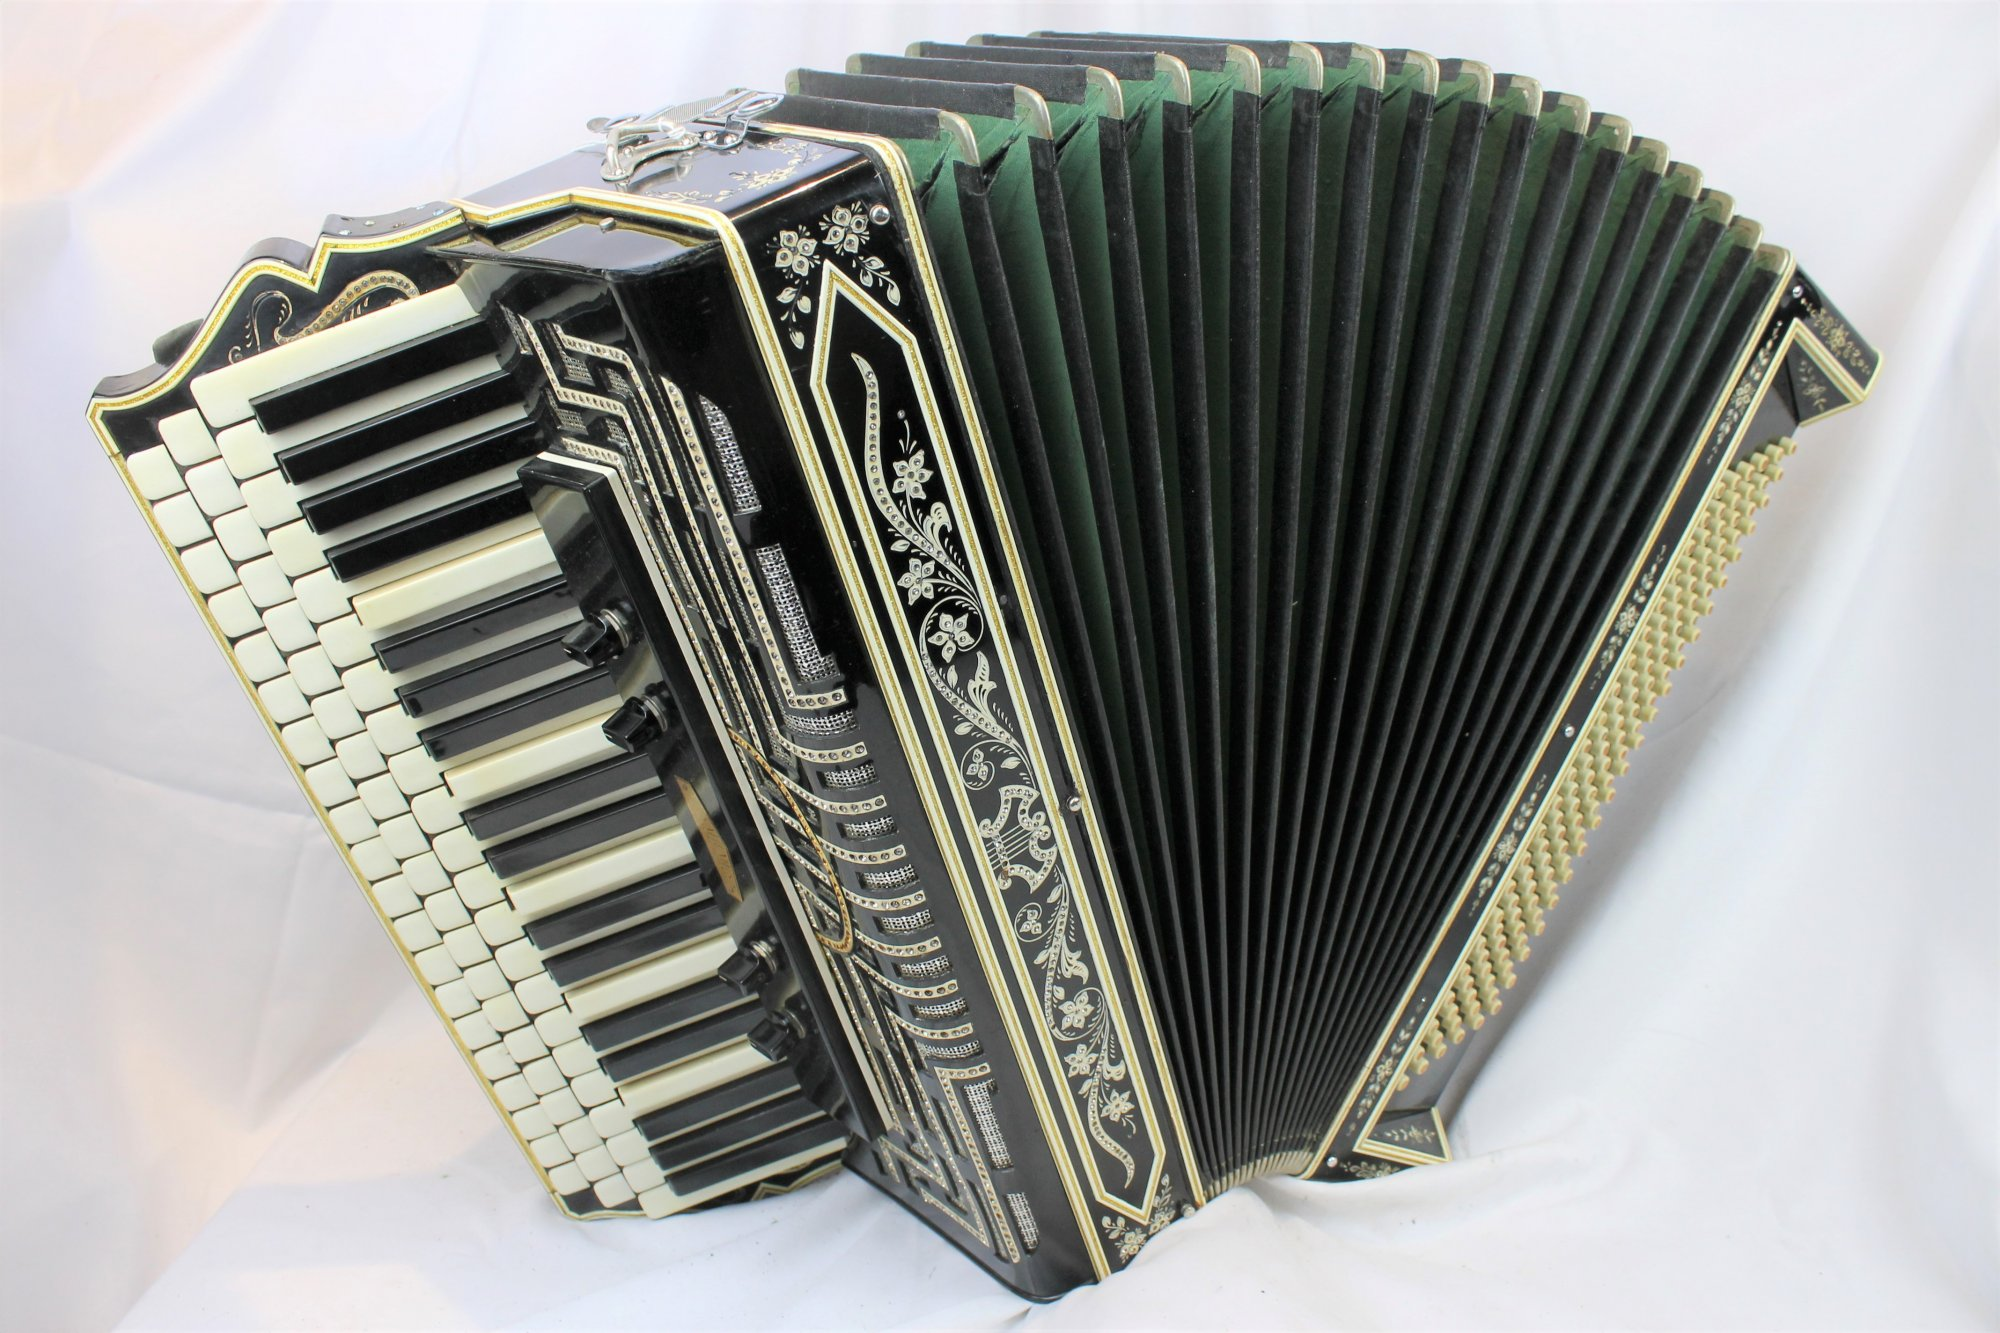 4048 - Black Kahlmen Piano Chromatic Button Accordion B System 84 120